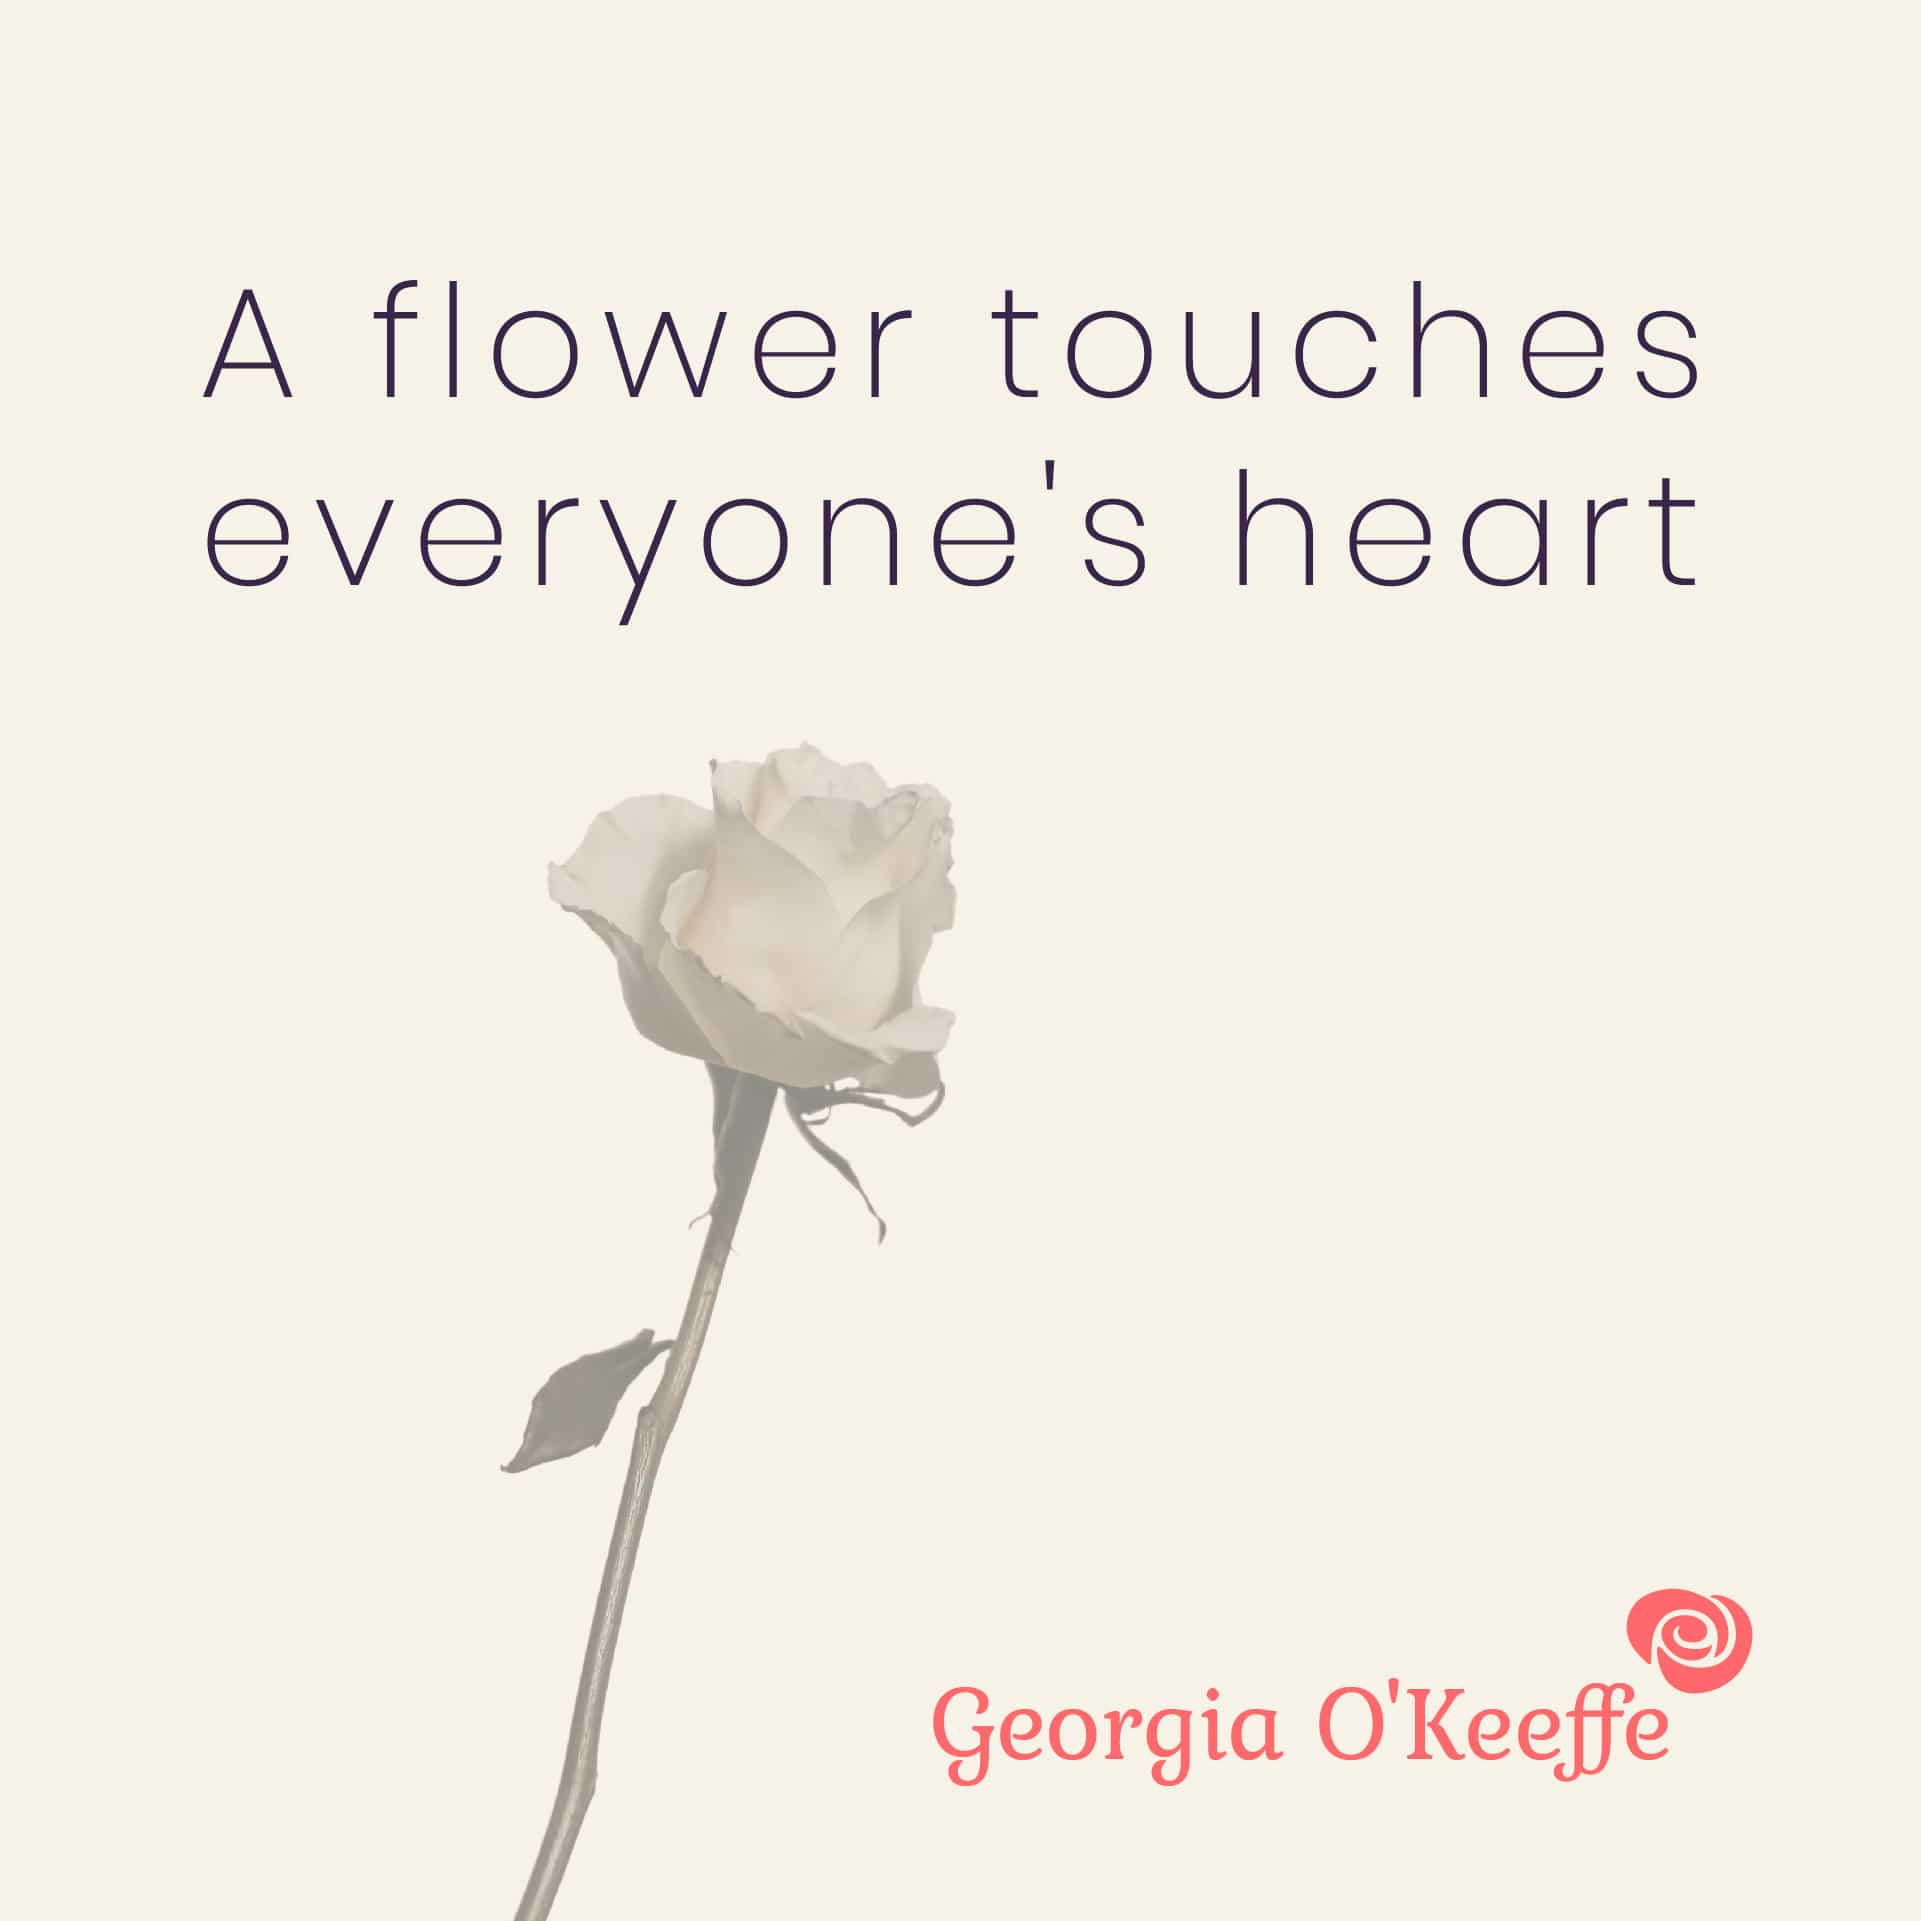 A flower touches everyone's heart